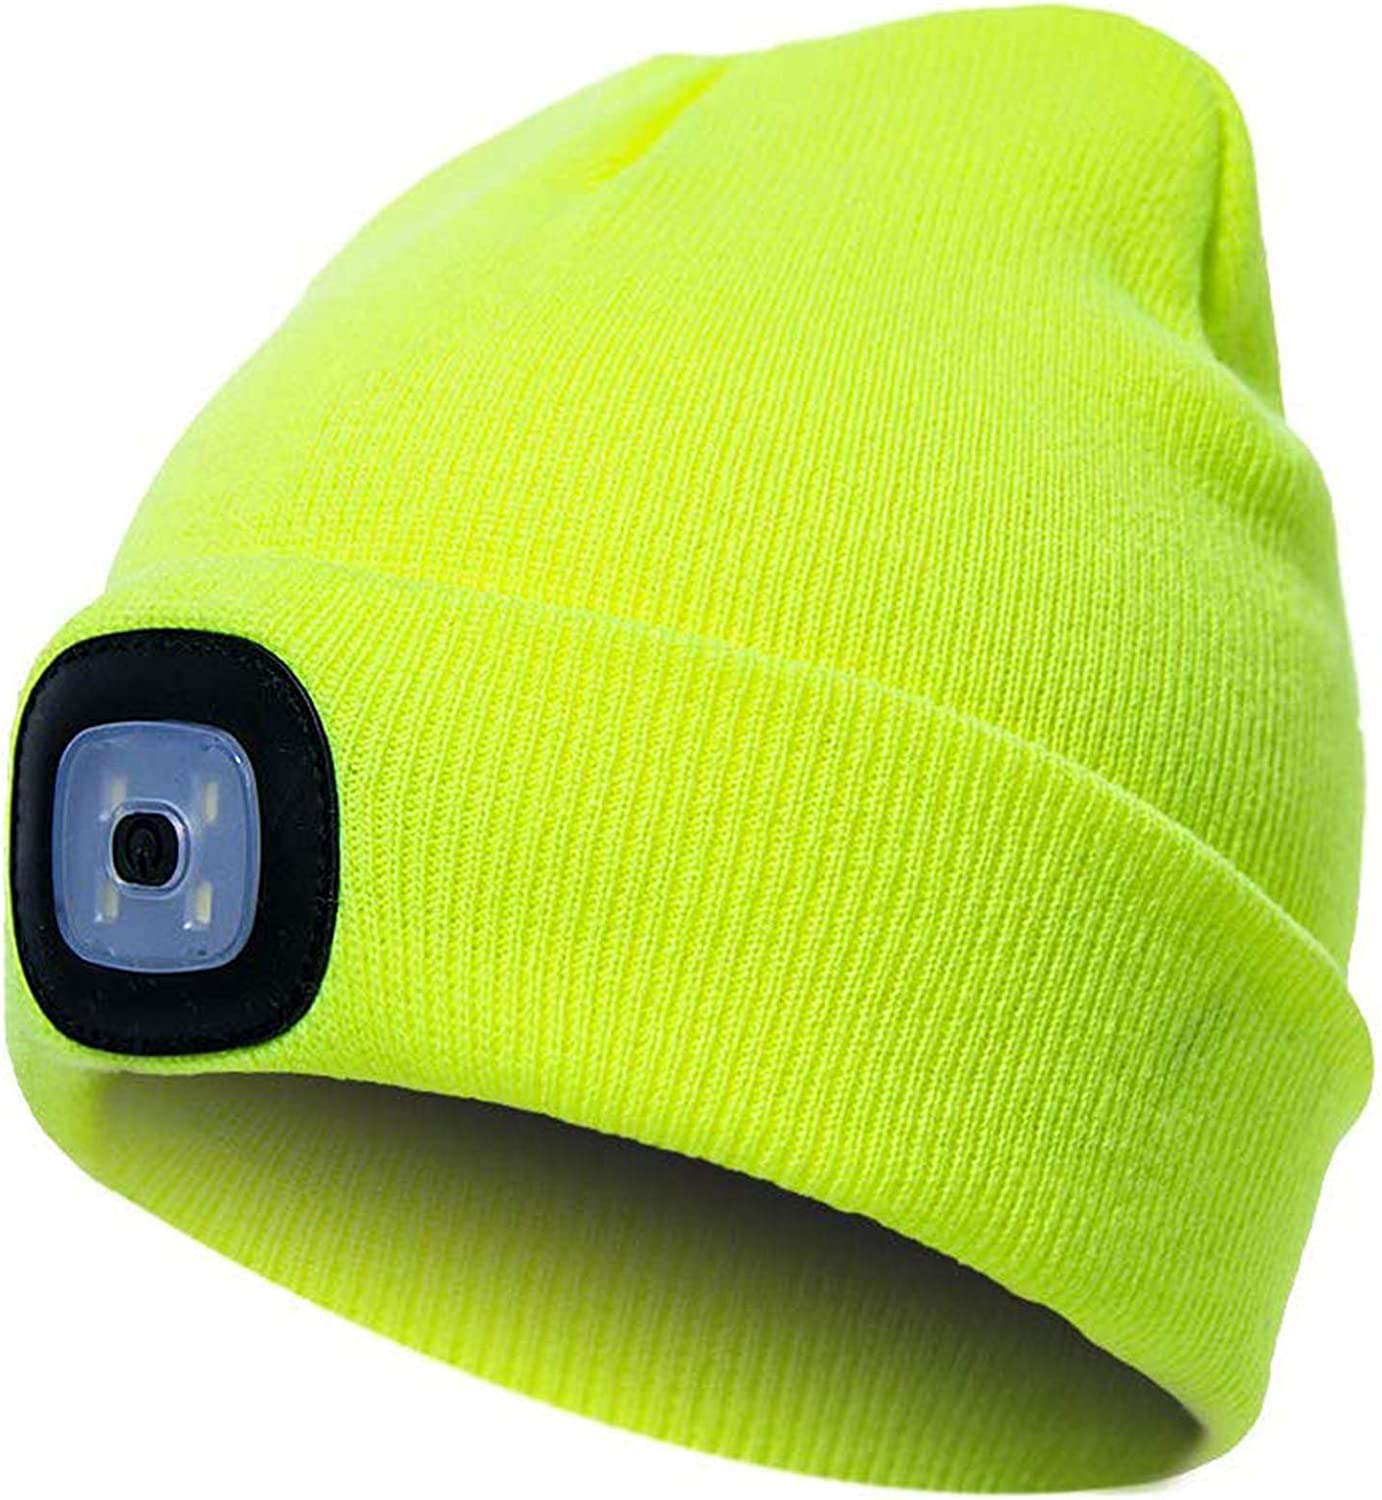 Warm Bright LED Lighted Beanie Cap Unisex Rechargeable Headlamp Hat